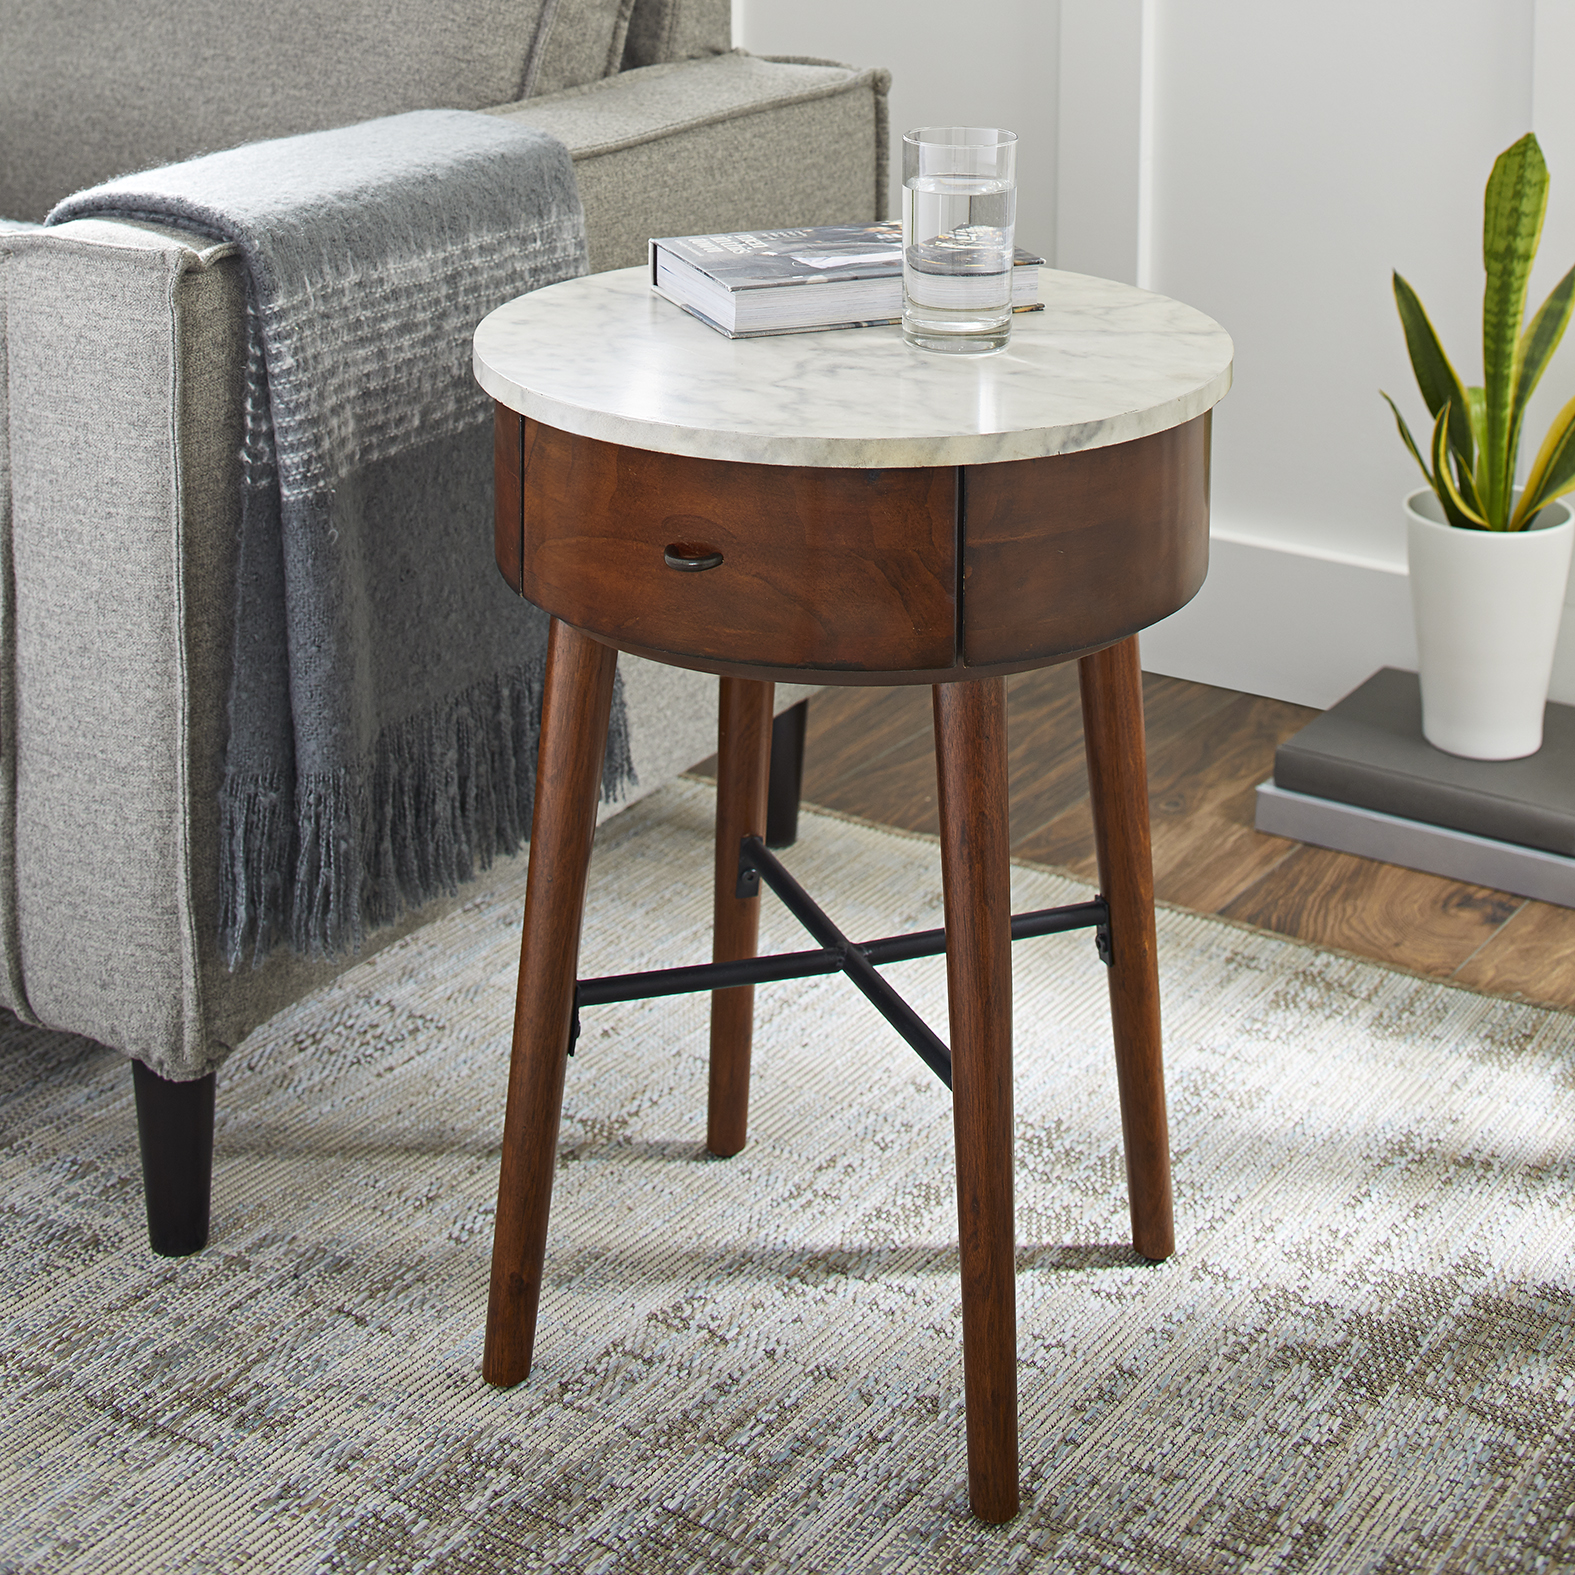 Better Homes and Gardens Wood & Marble Finish Round Accent Table, Walnut